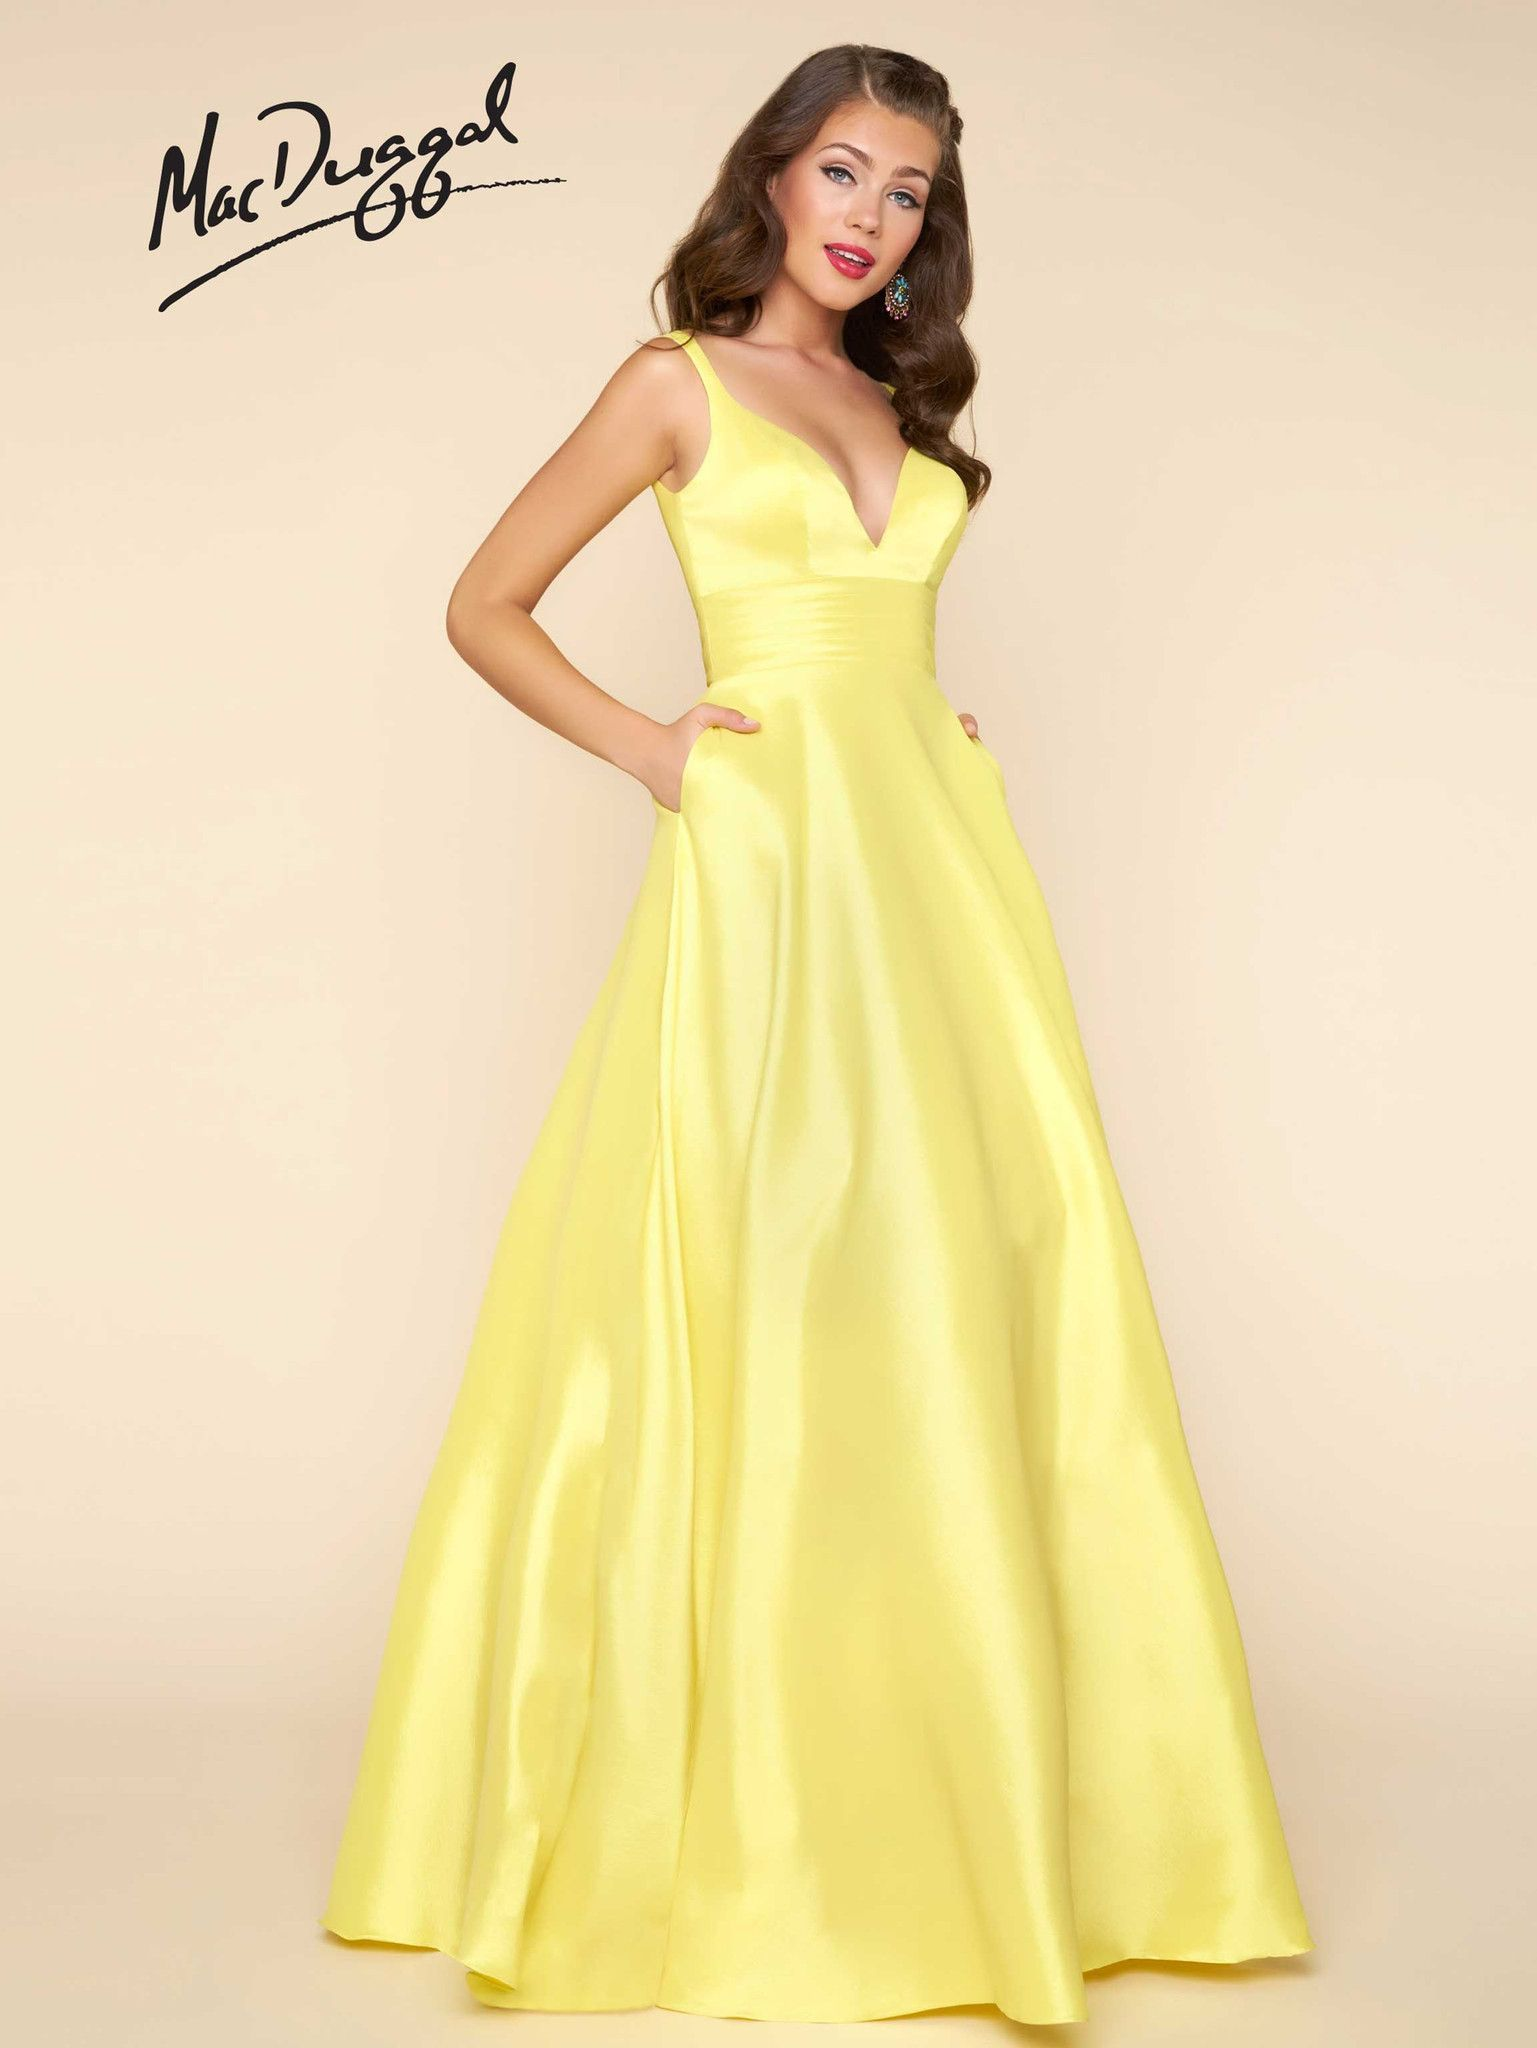 1c2d17e41114 ... V-neck, shiny satin fit and flare, floor length prom dress with open  back and pockets. Available in Red, Midnight & Lemon. Perfect for prom,  homecoming, ...